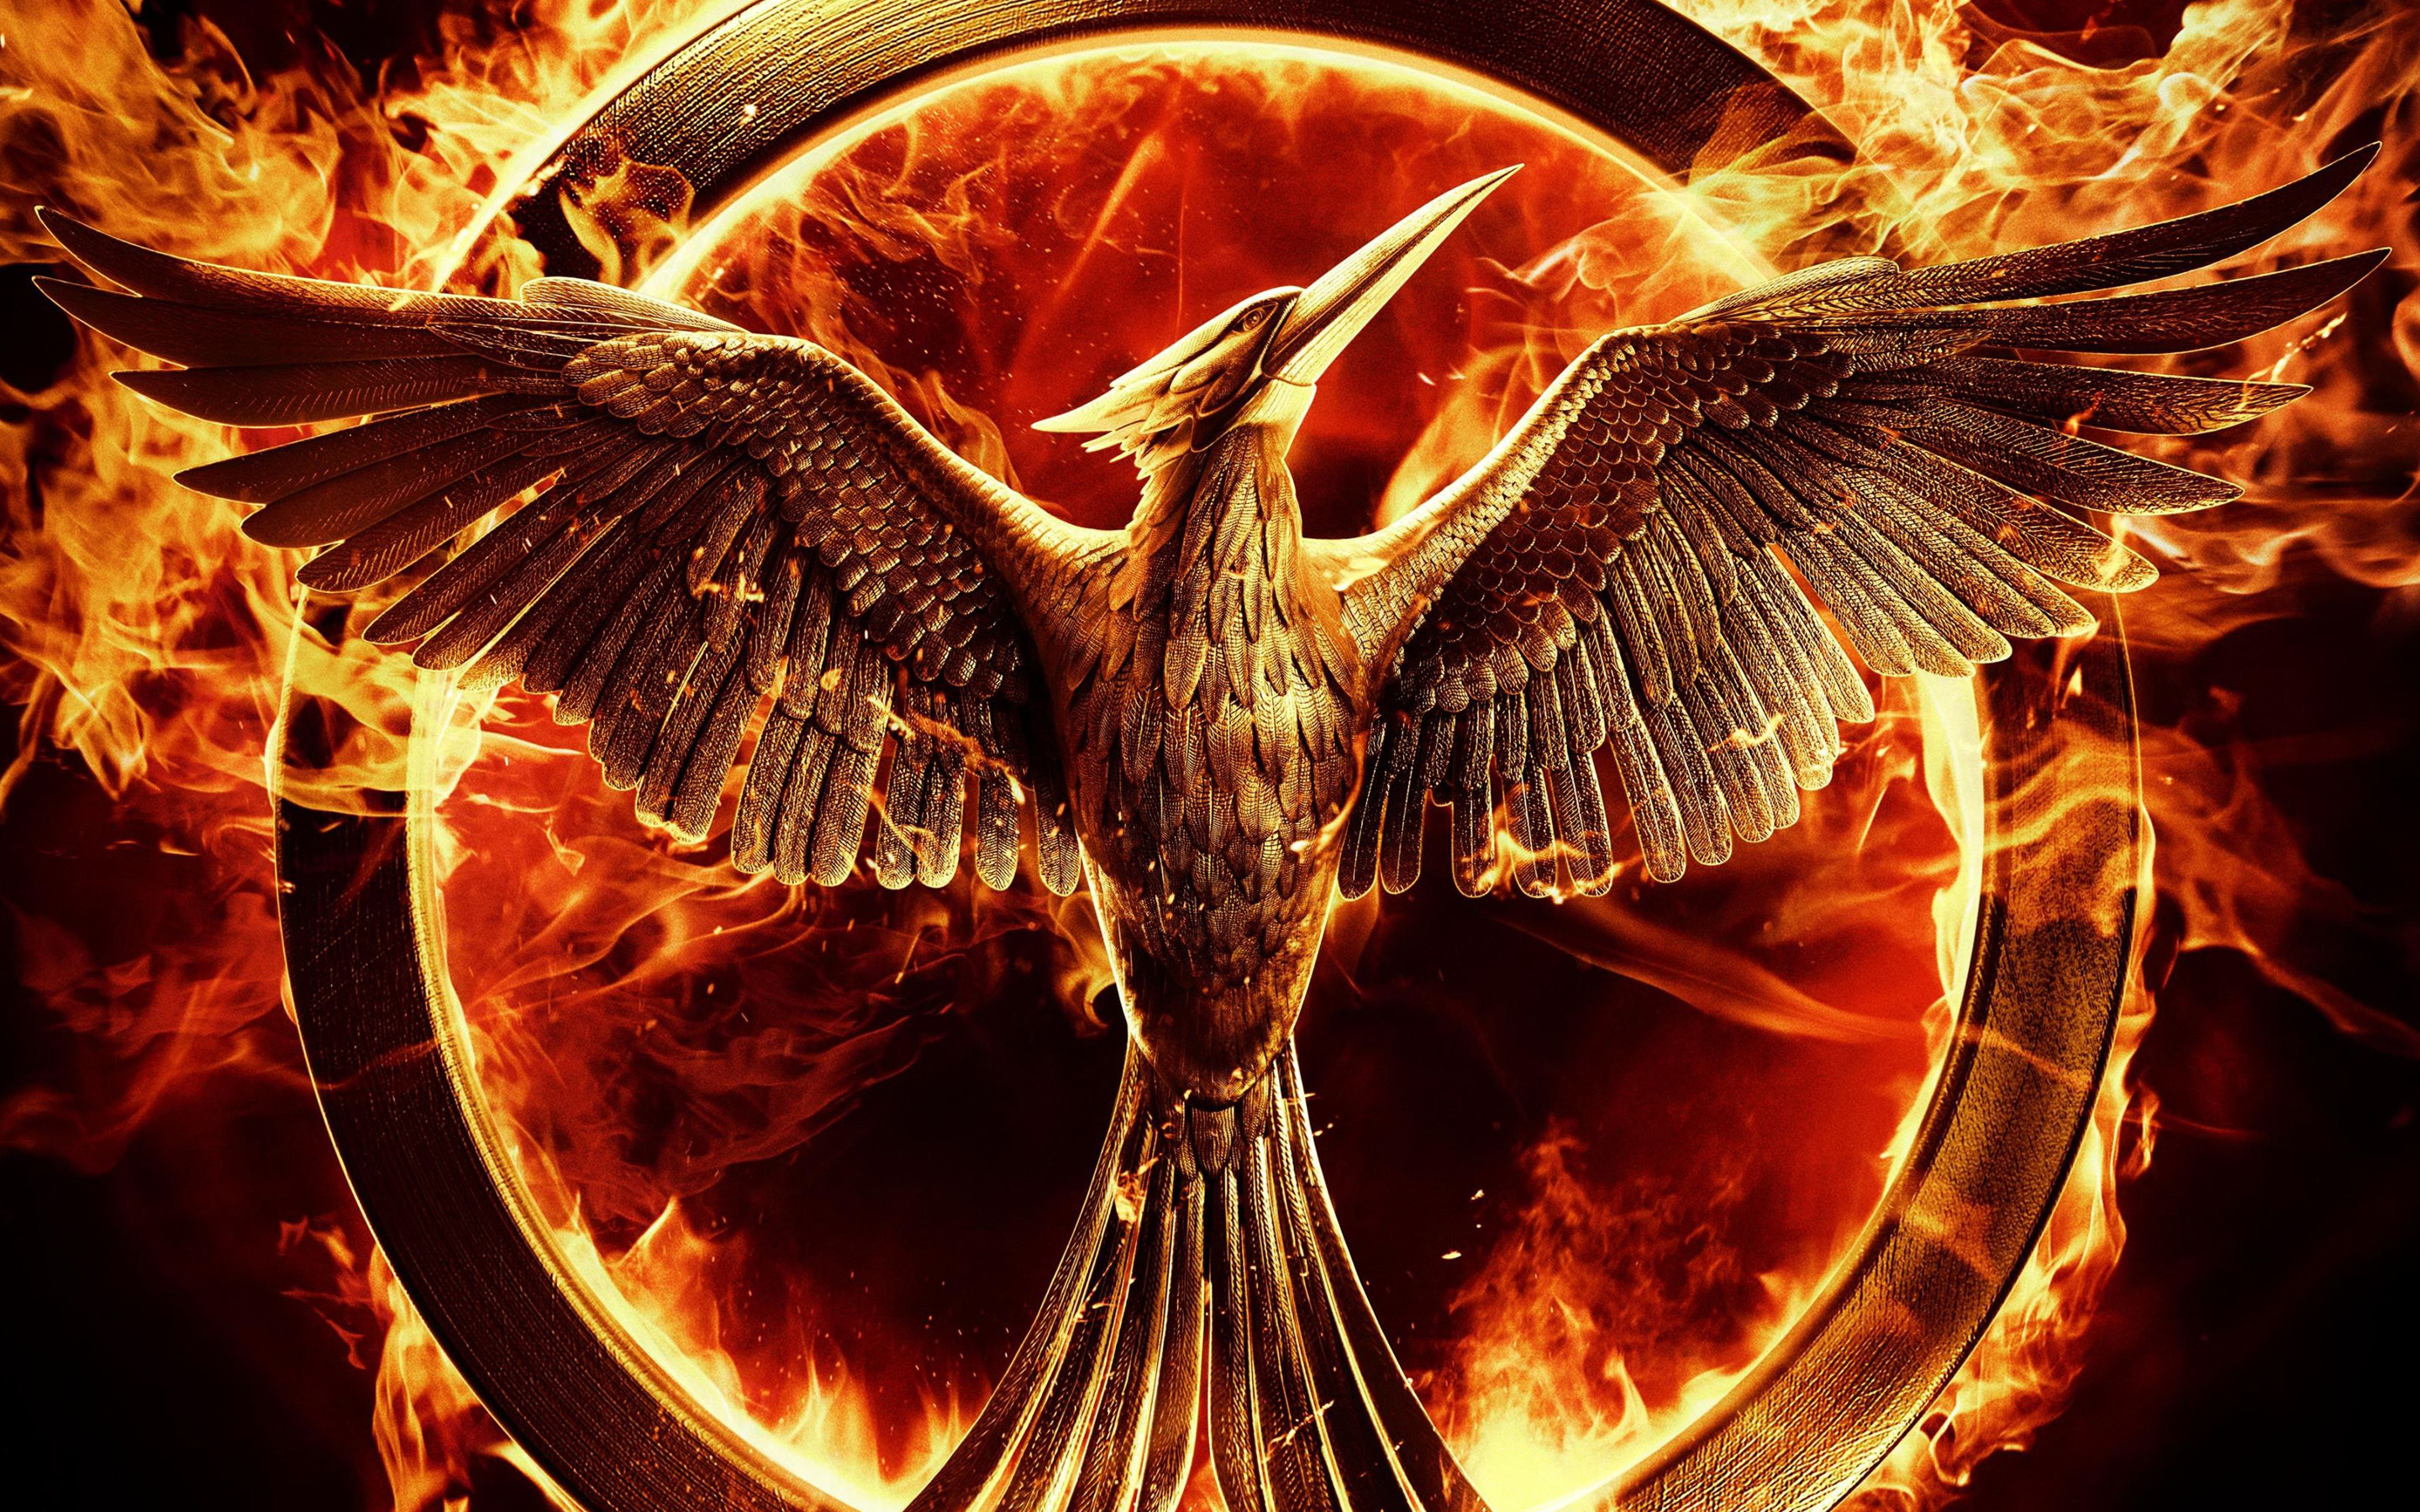 2880x1800 The Hunger Games Mockingjay